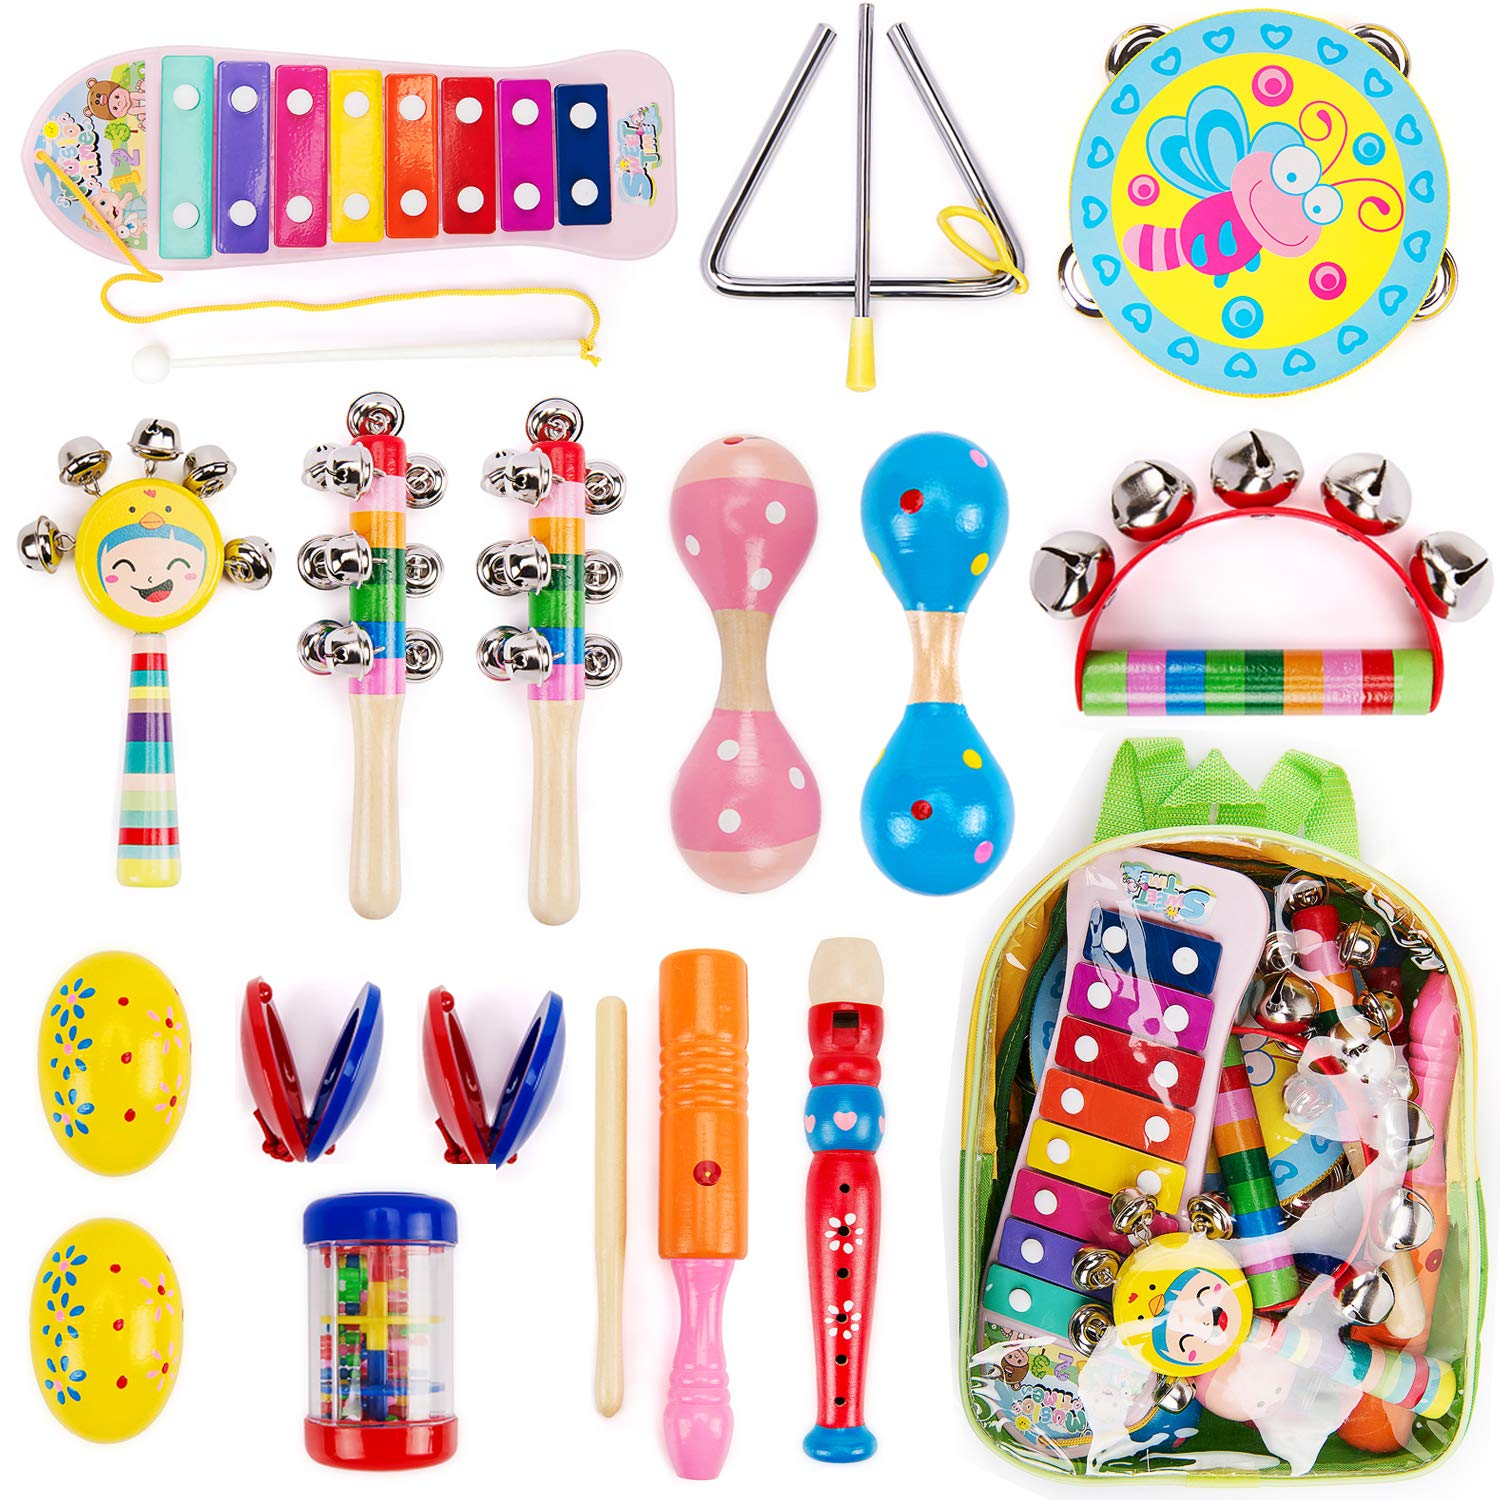 Amagoing Toddler Musical Instruments, 16Pcs Wooden Percussion Instruments Toy Activity Center for Preschool Educational, Musical Toys Set for Boys and Girls with Storage Backpack